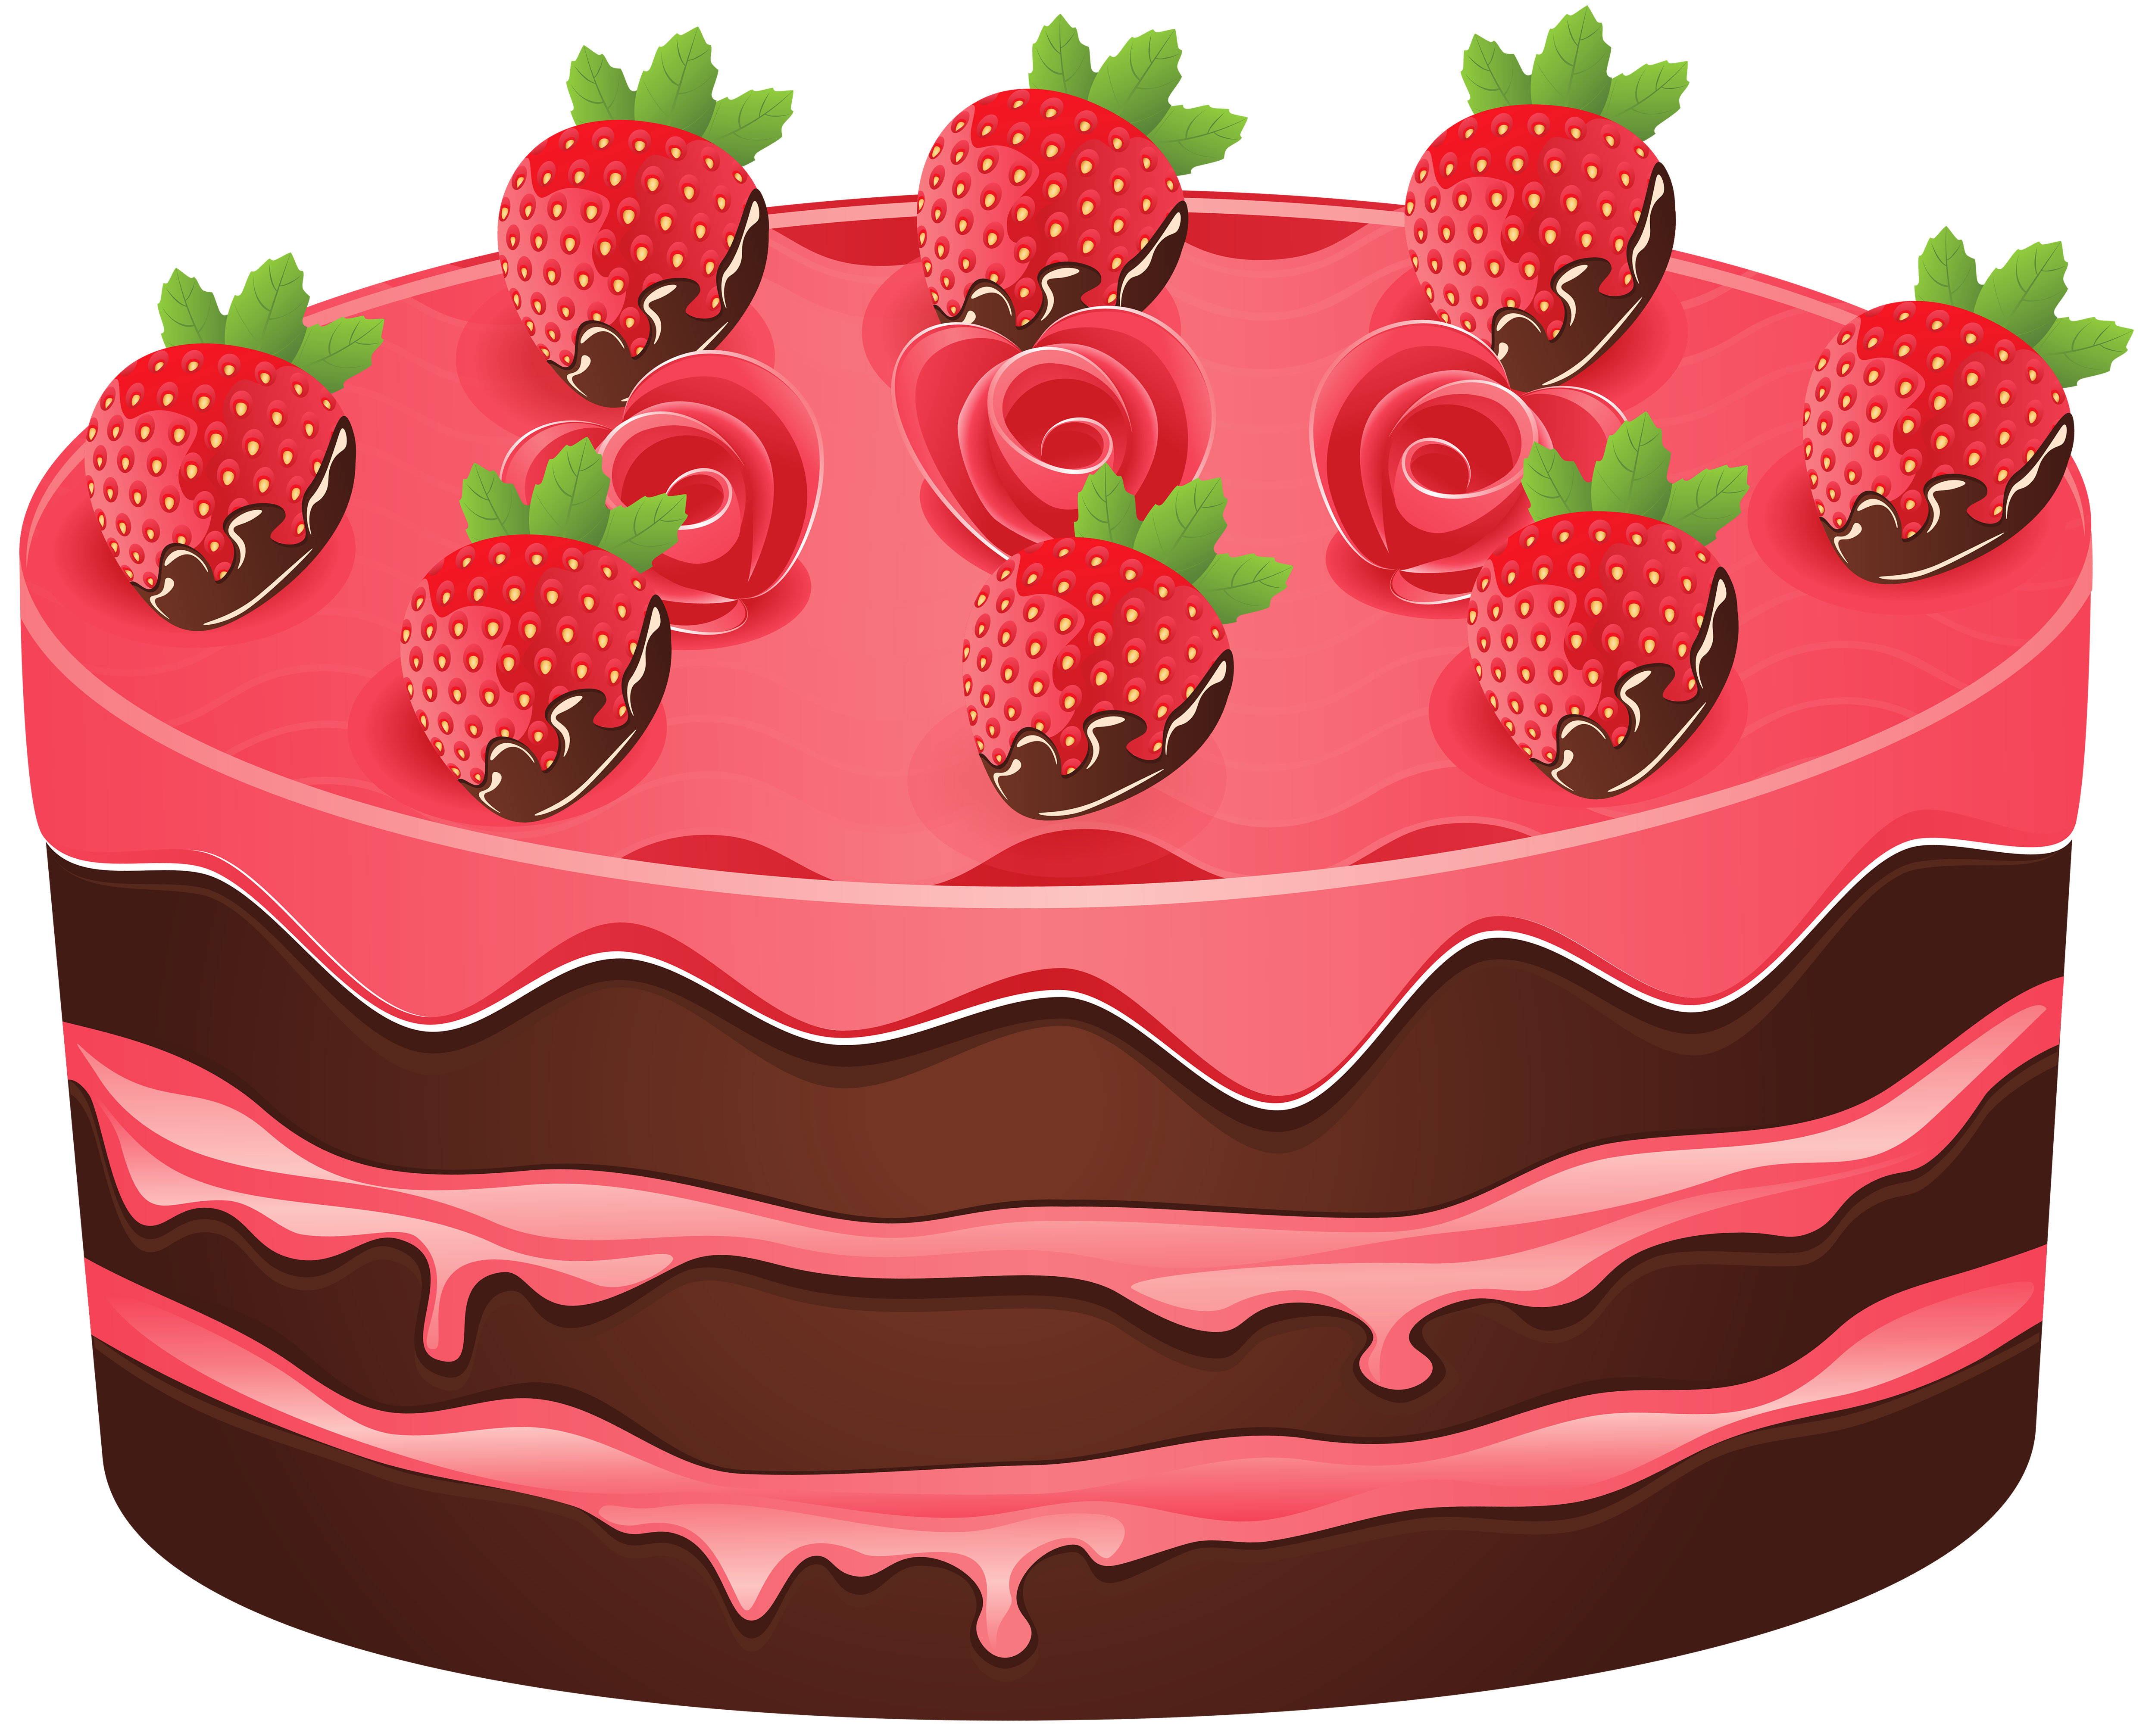 Strawberry cake png image. Cookies clipart baked goods